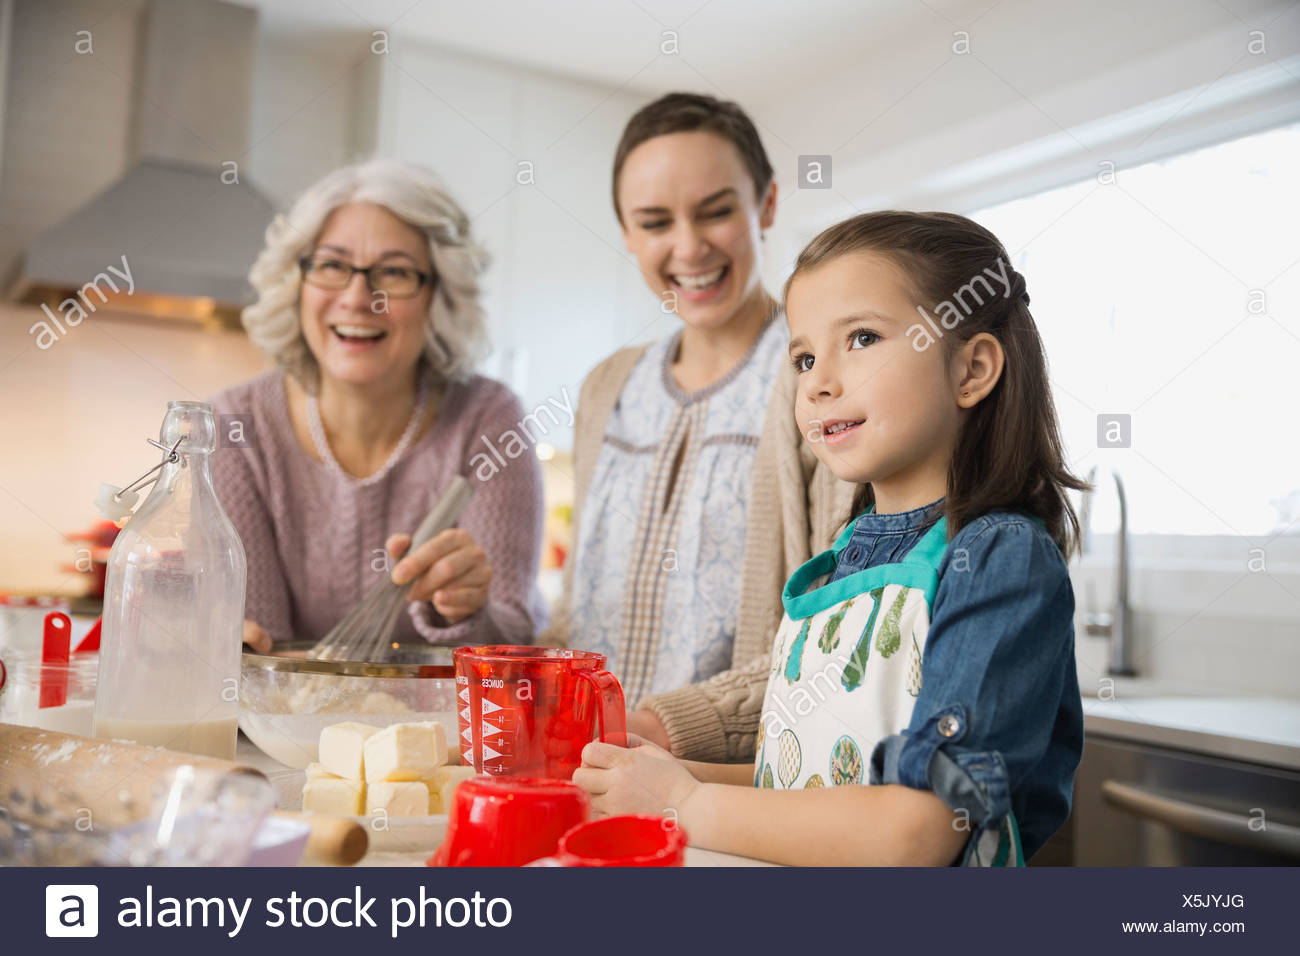 Three generation family baking together in kitchen - Stock Image